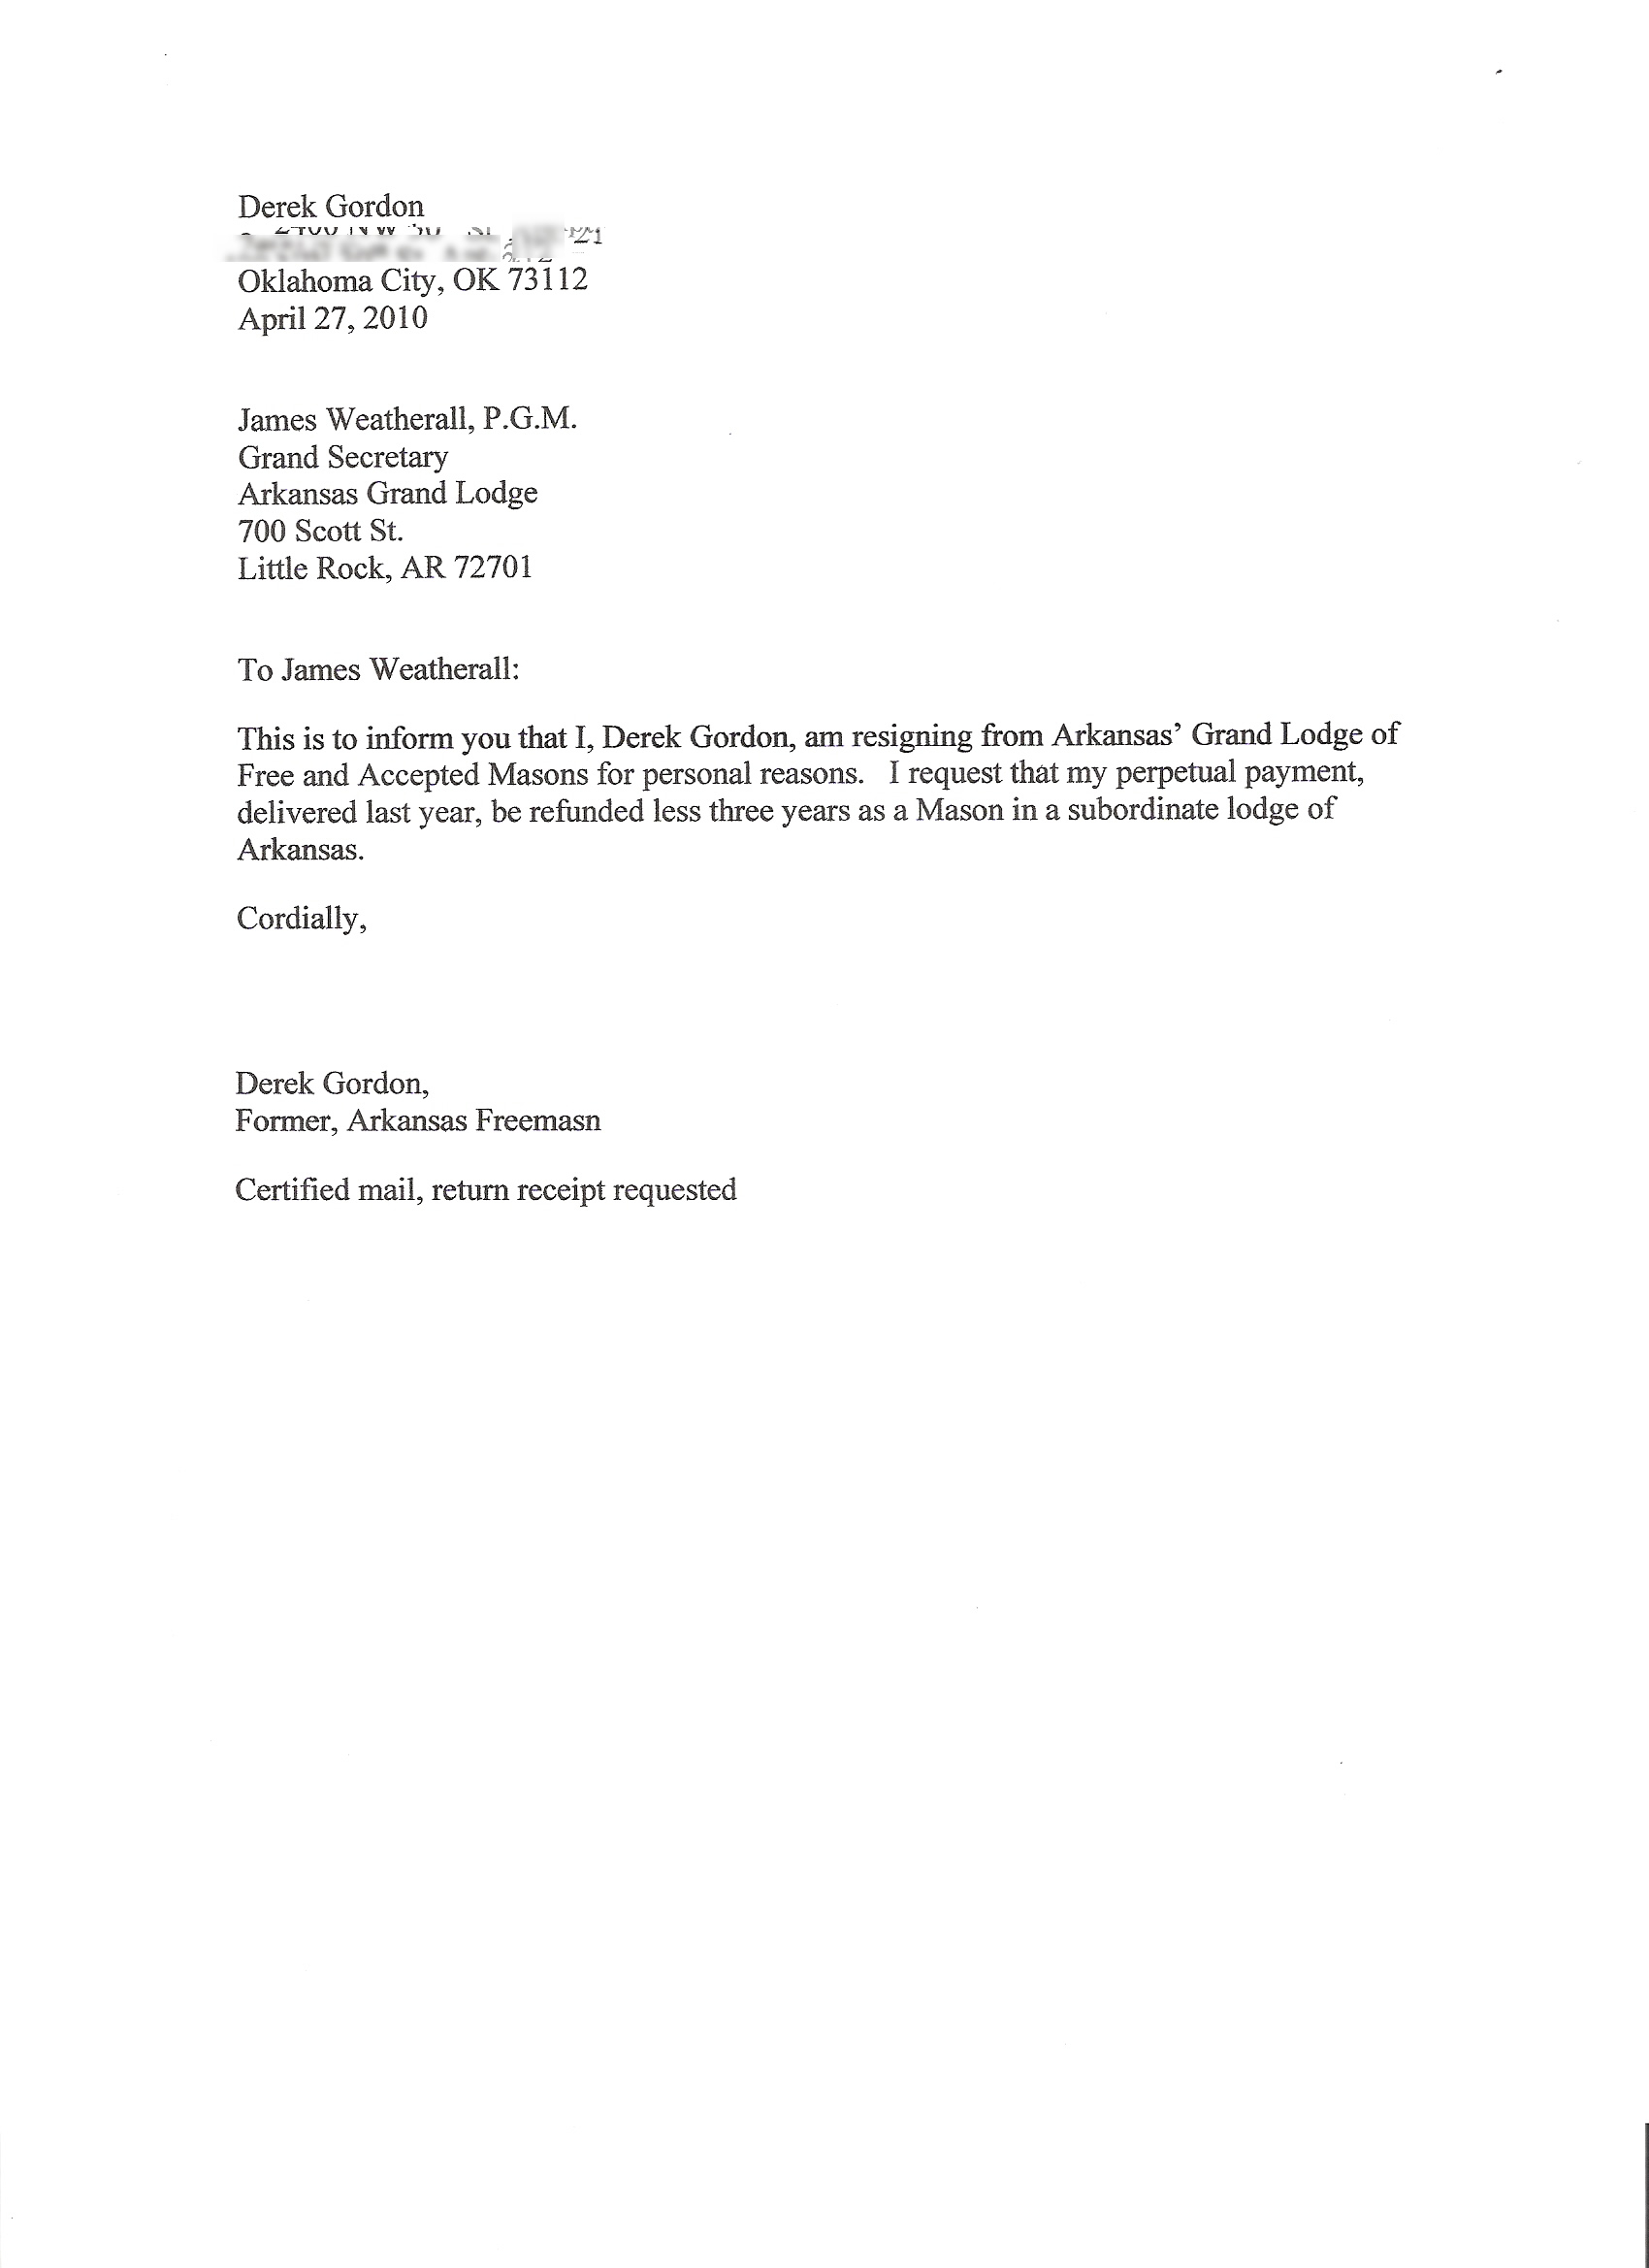 Resignation Letter Sample 2 Weeks Notice derek gordon